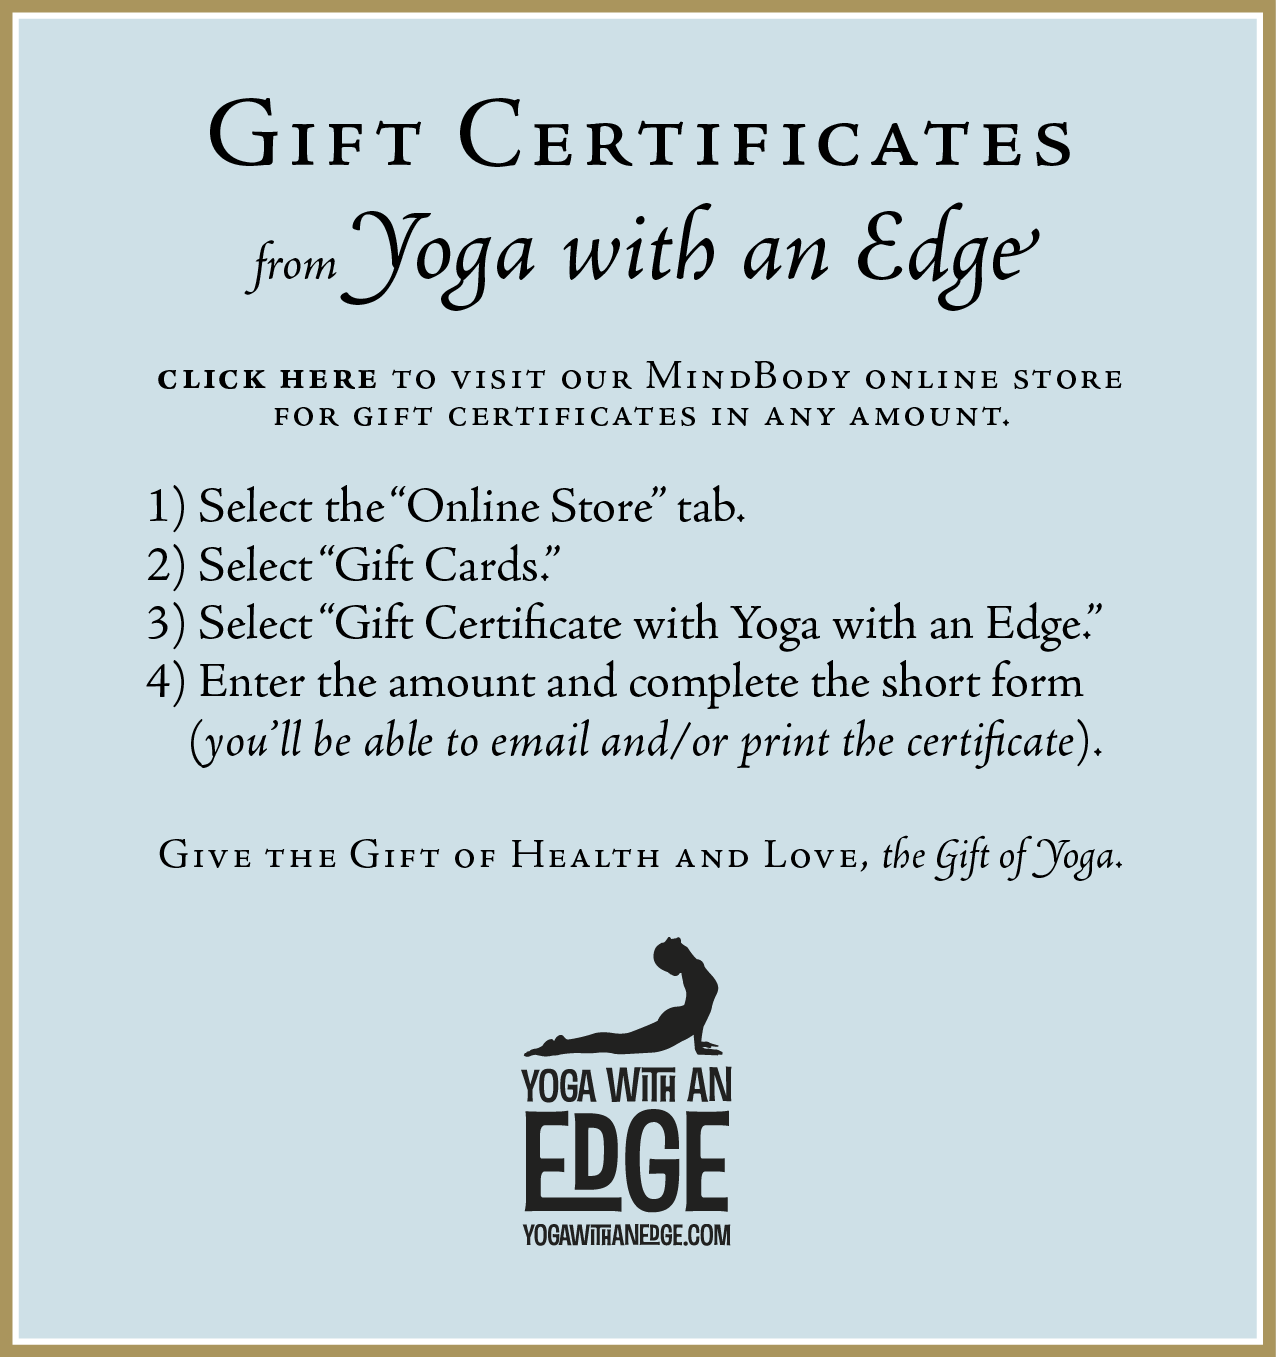 PURCHASEbutton-Gift Certificates - Yoga with an Edge